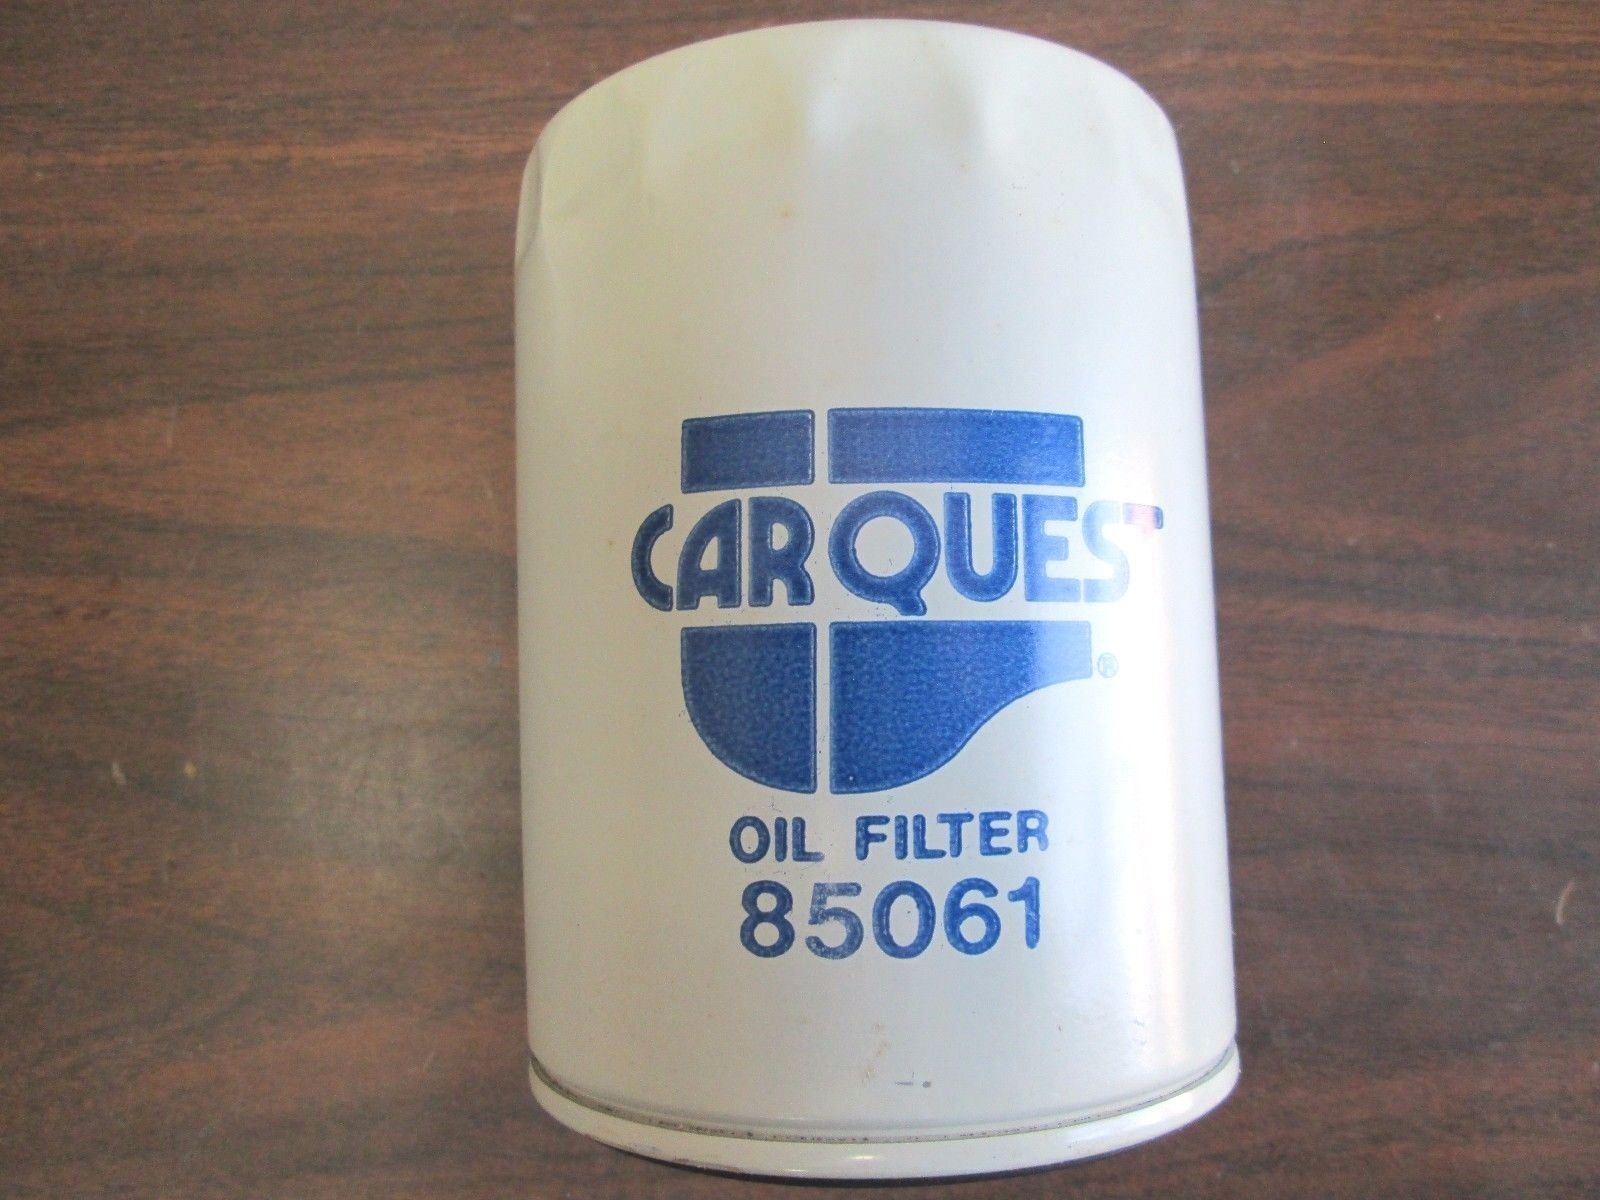 Primary image for 85061, Carquest, Oil Filter